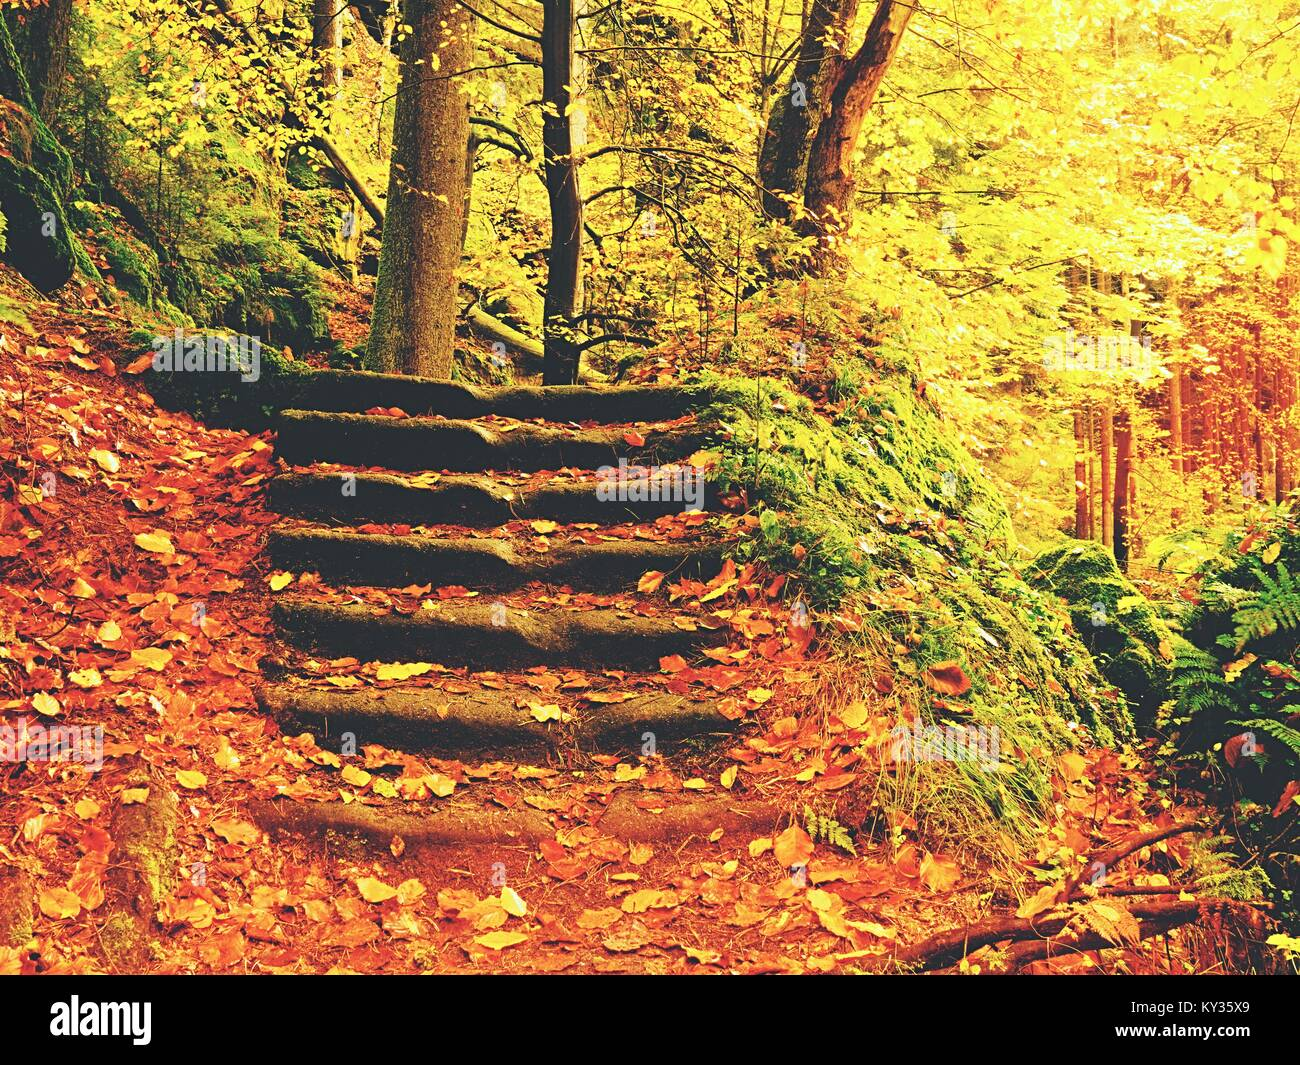 Stony steps. Beautiful landscape with wild river in autumnal forest. Tranquil scene with river. - Stock Image